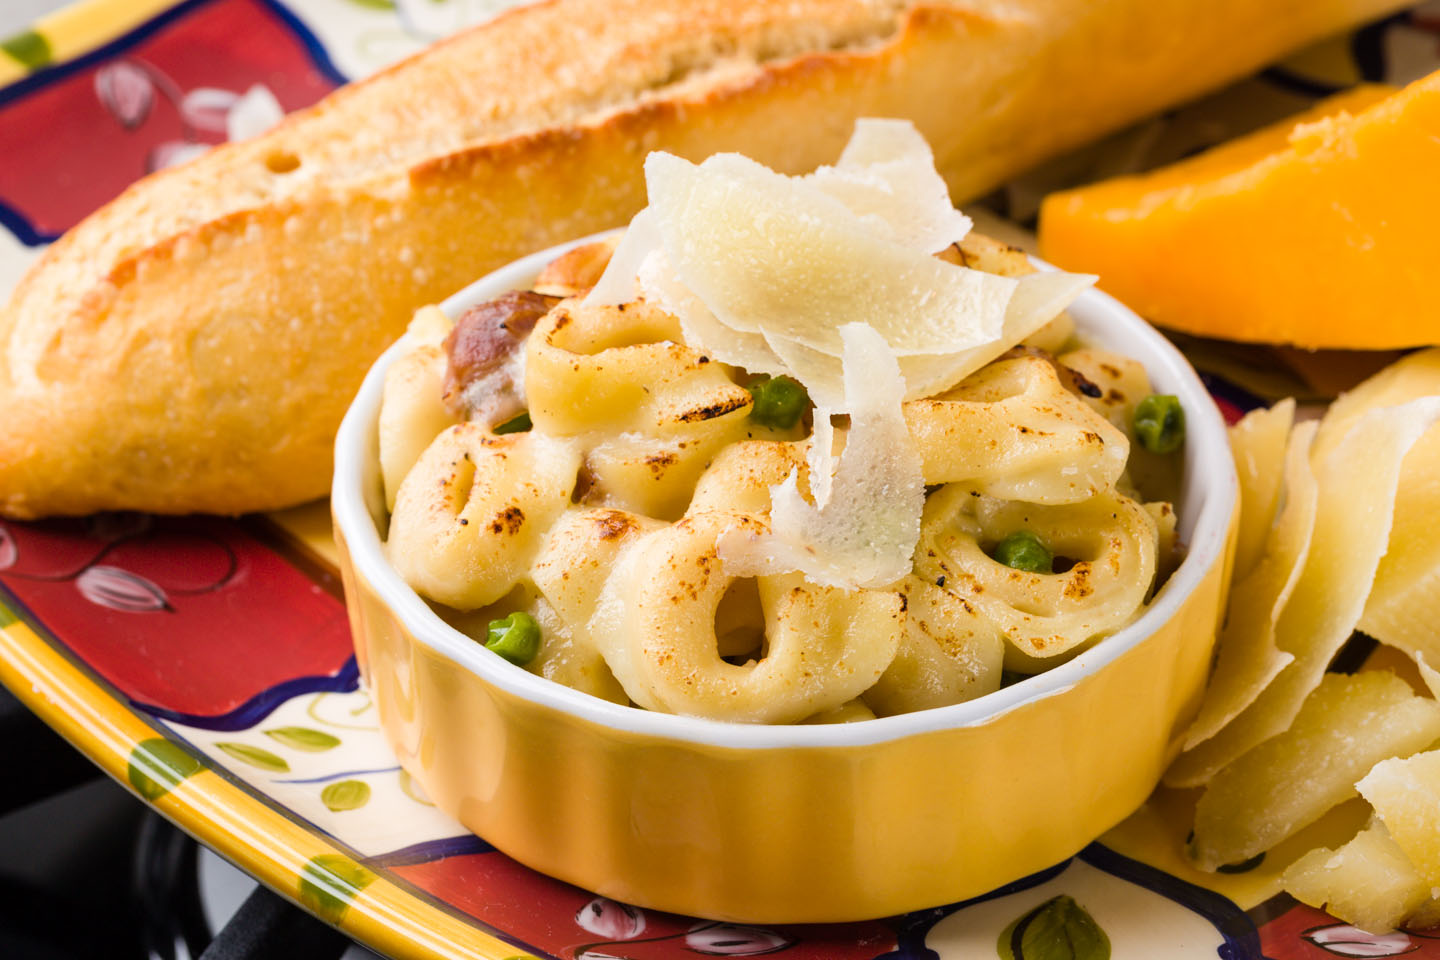 Pasta, parmesan, and bread